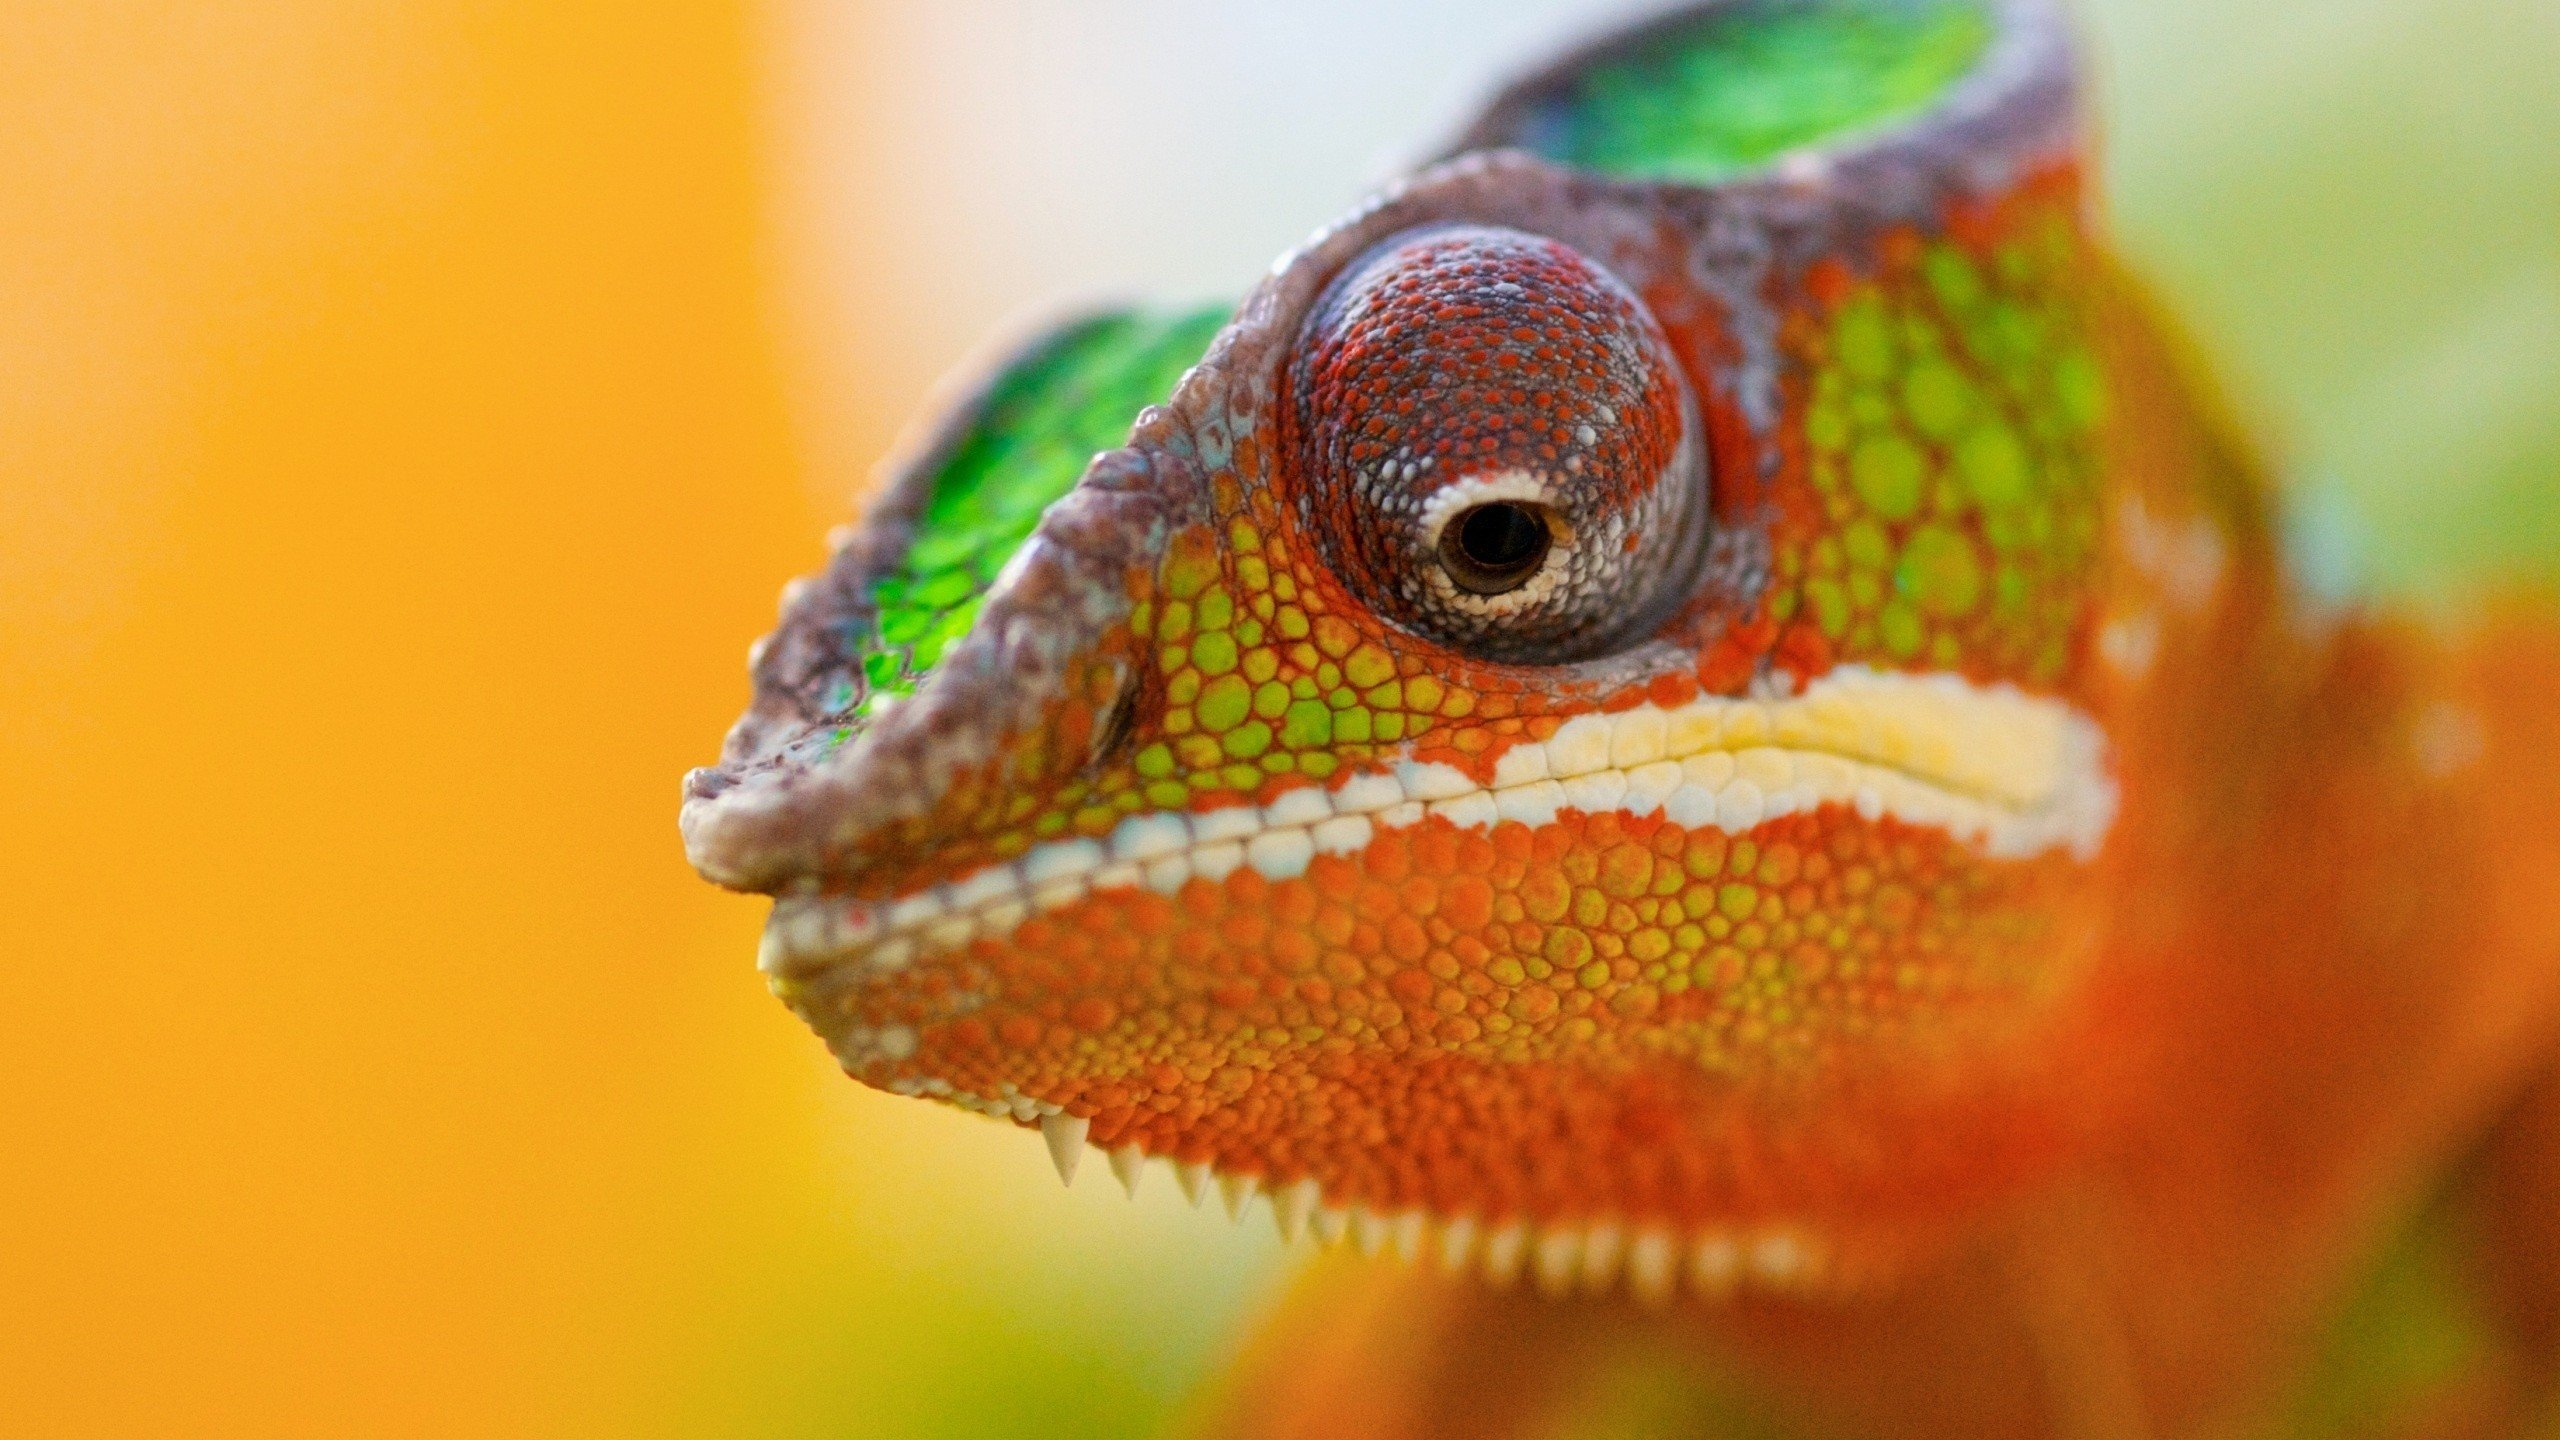 Free Chameleon high quality wallpaper ID:462565 for hd 2560x1440 computer